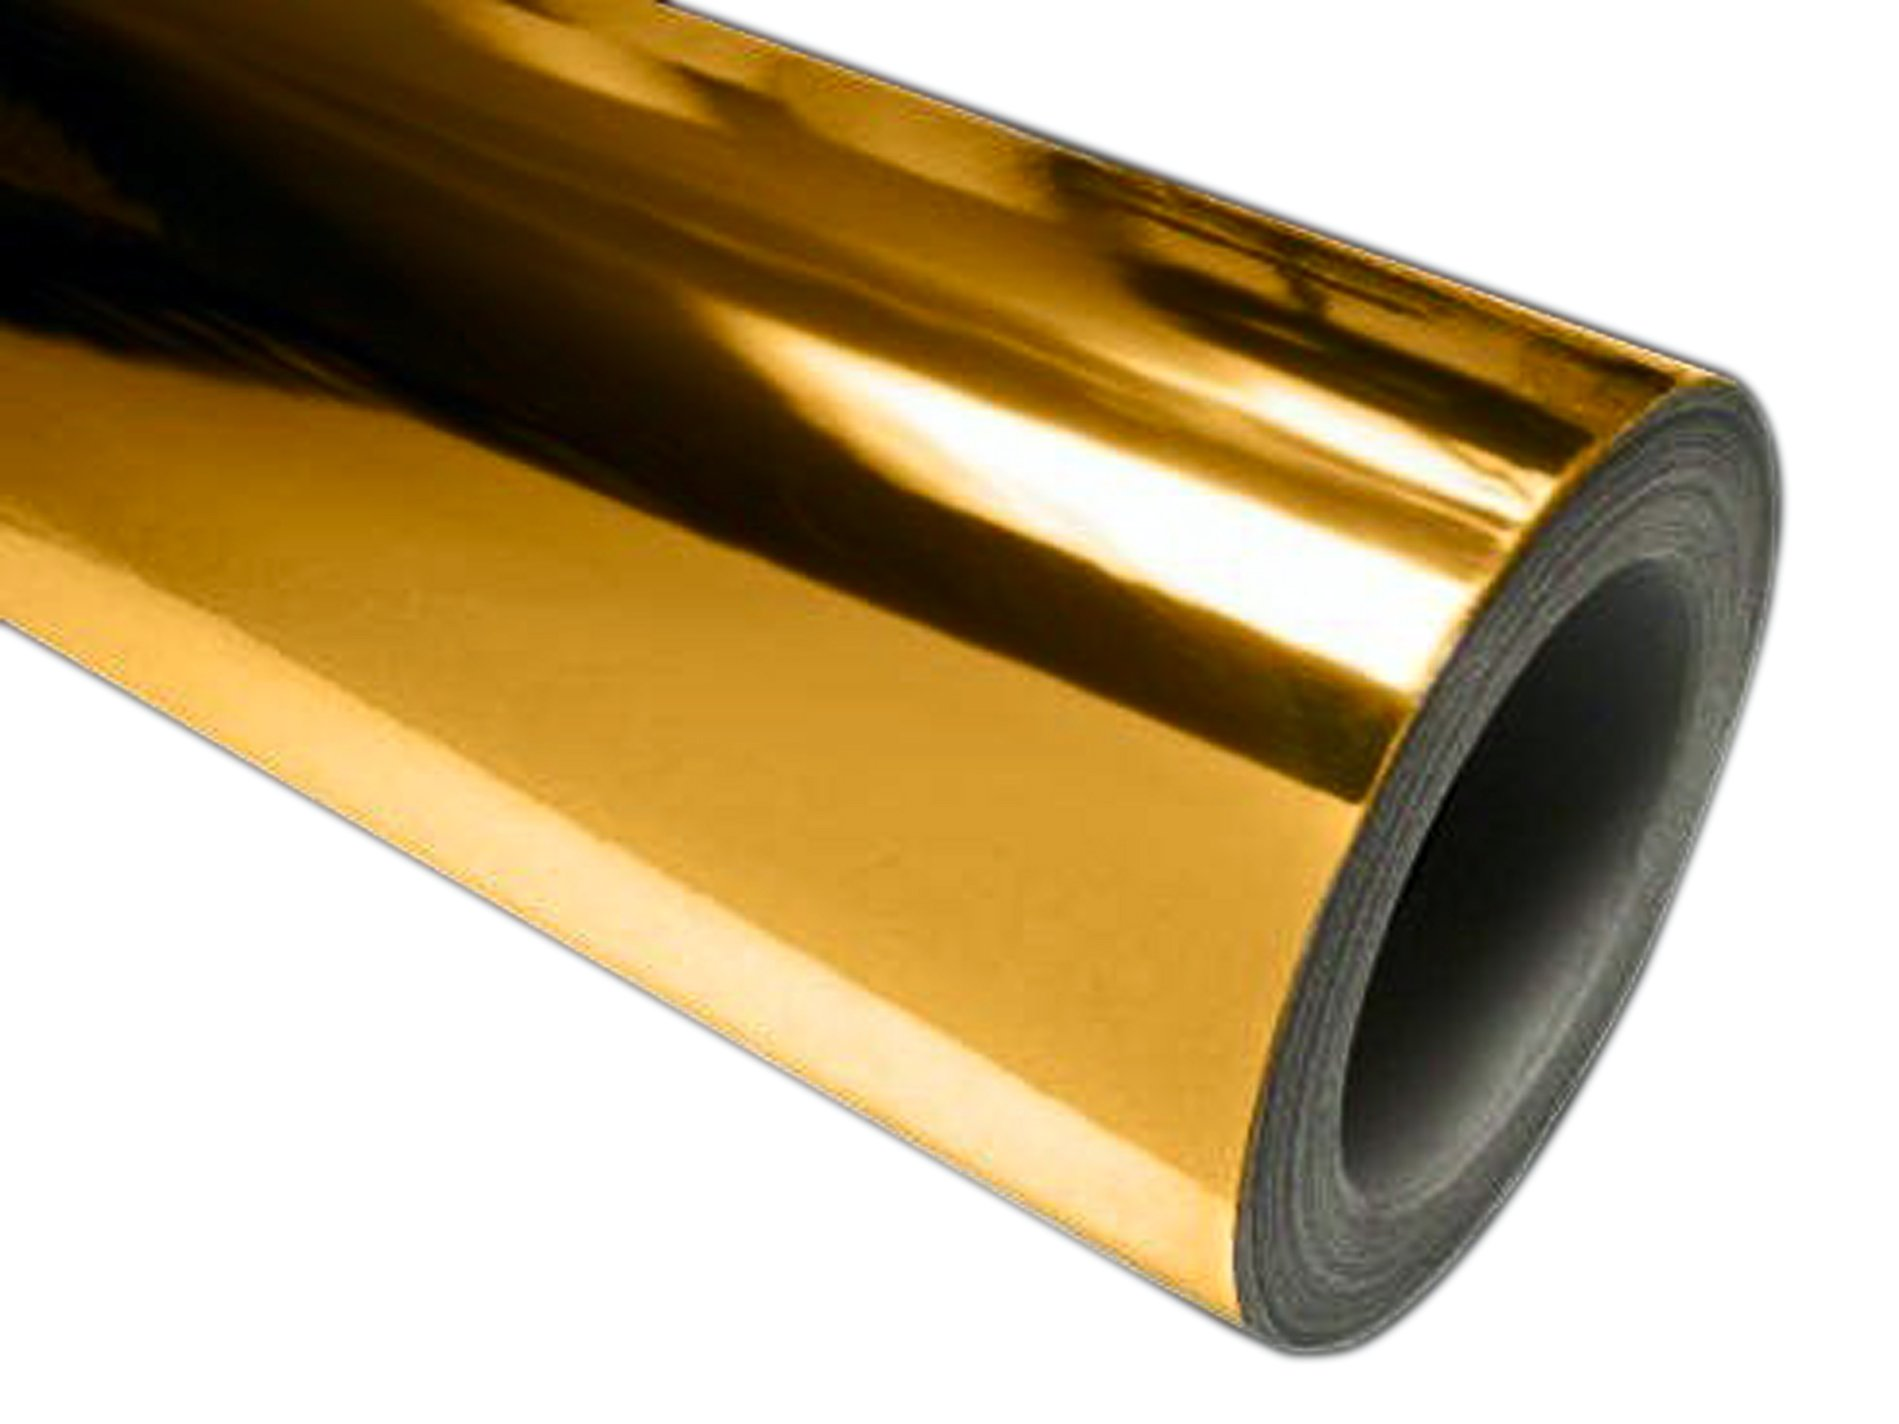 24'' x 50 ft Roll of Gold(Chrome Mirror) Repositionable Adhesive-Backed Vinyl for Craft Cutters, Punches and Vinyl Sign Cutters